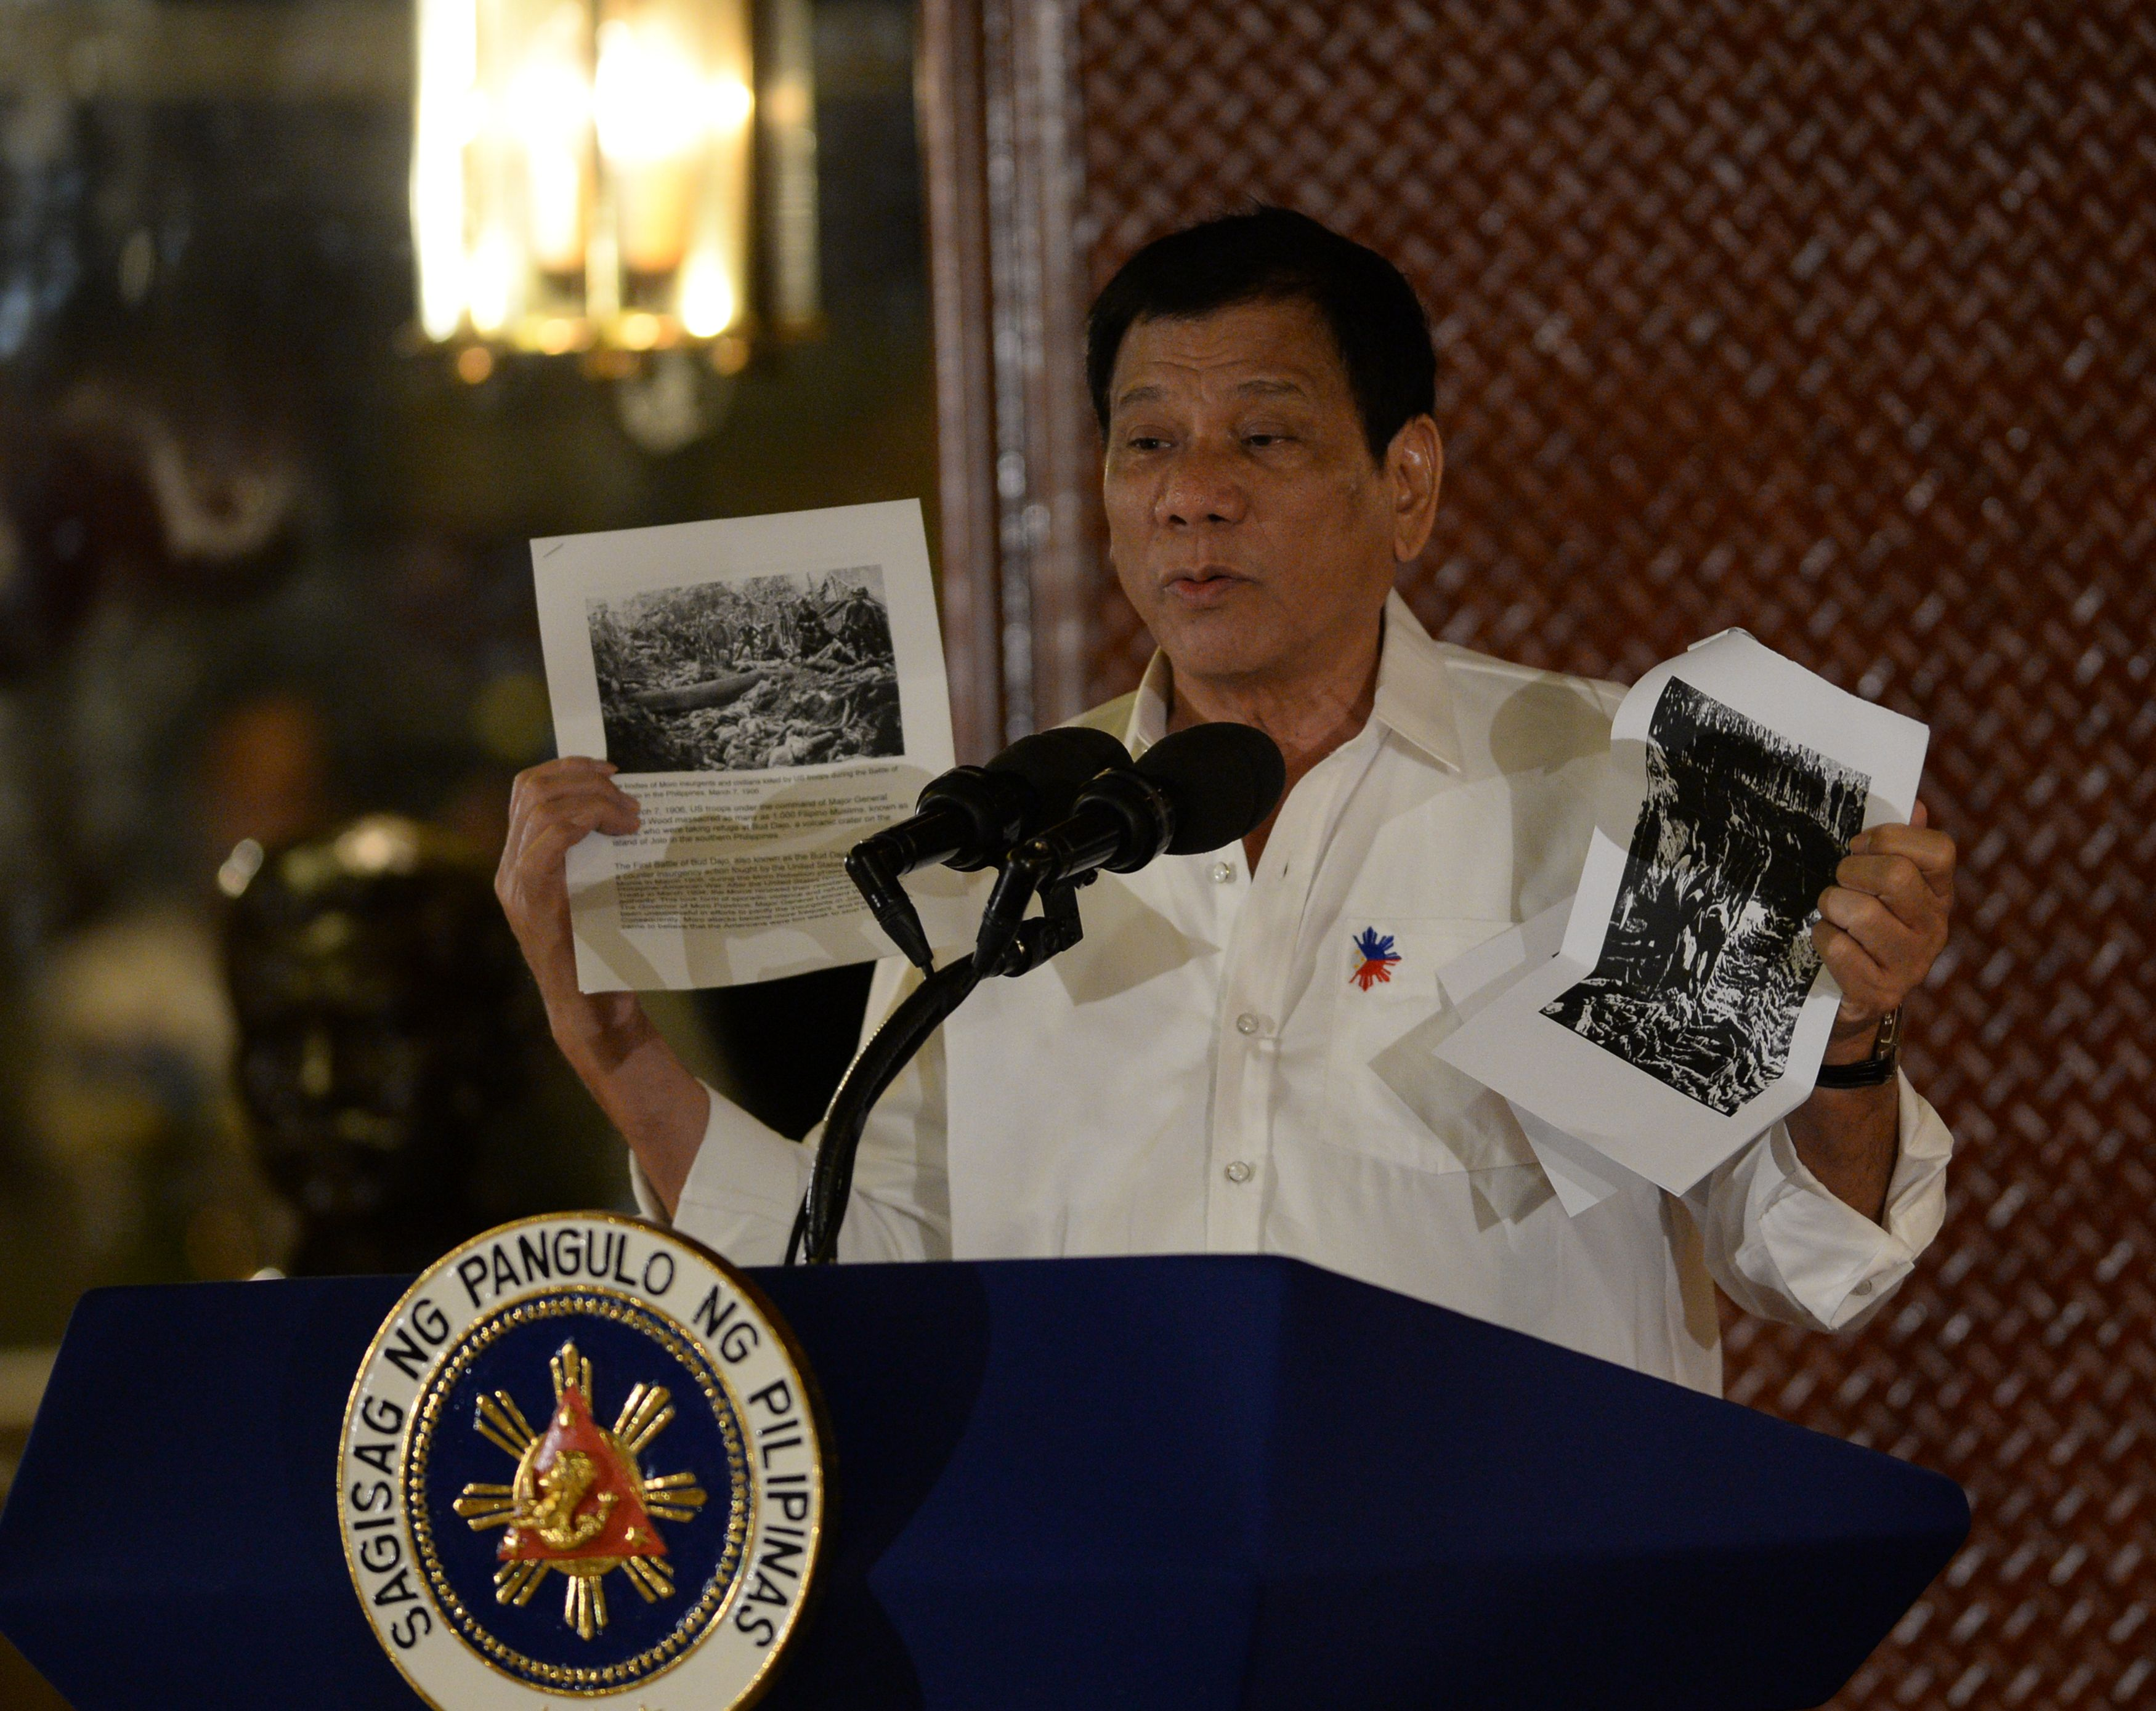 Philippine President Rodrigo Duterte in Manila on Sept. 12, 2016, cites accounts of U.S. troops who killed Muslims during the U.S.'s occupation of the Philippines in the early-1900s